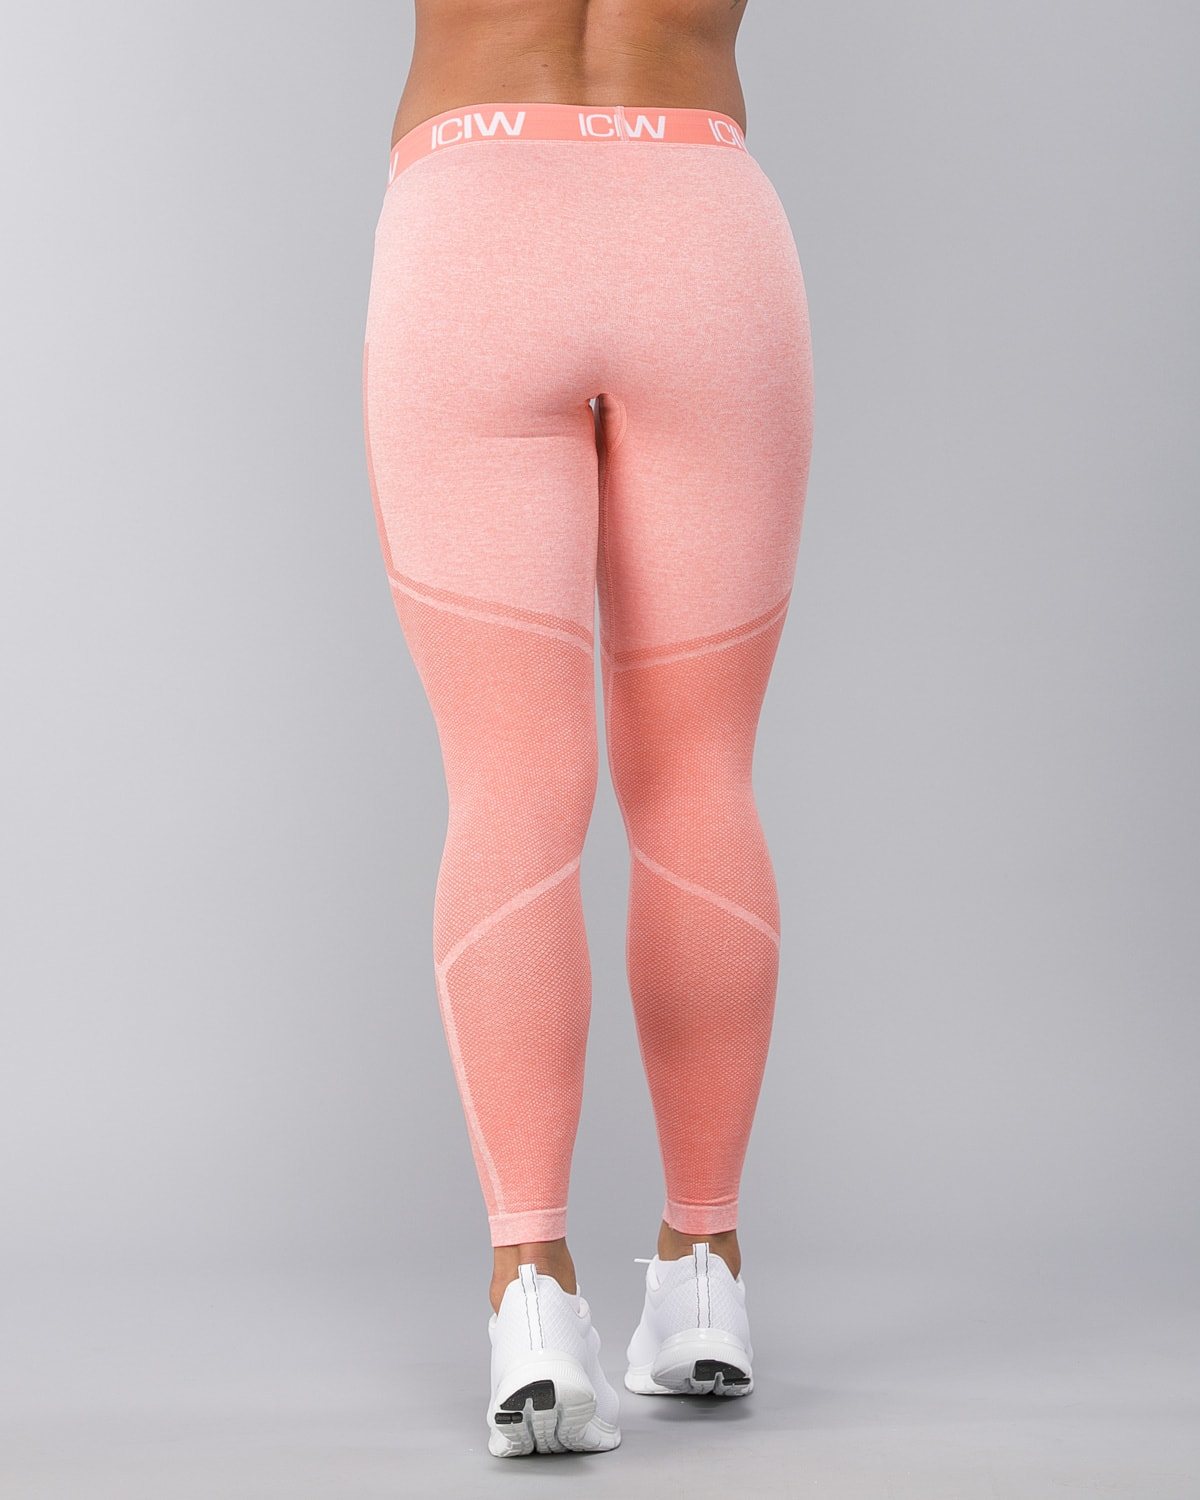 Icaniwill-Seamless Tights–Peach3